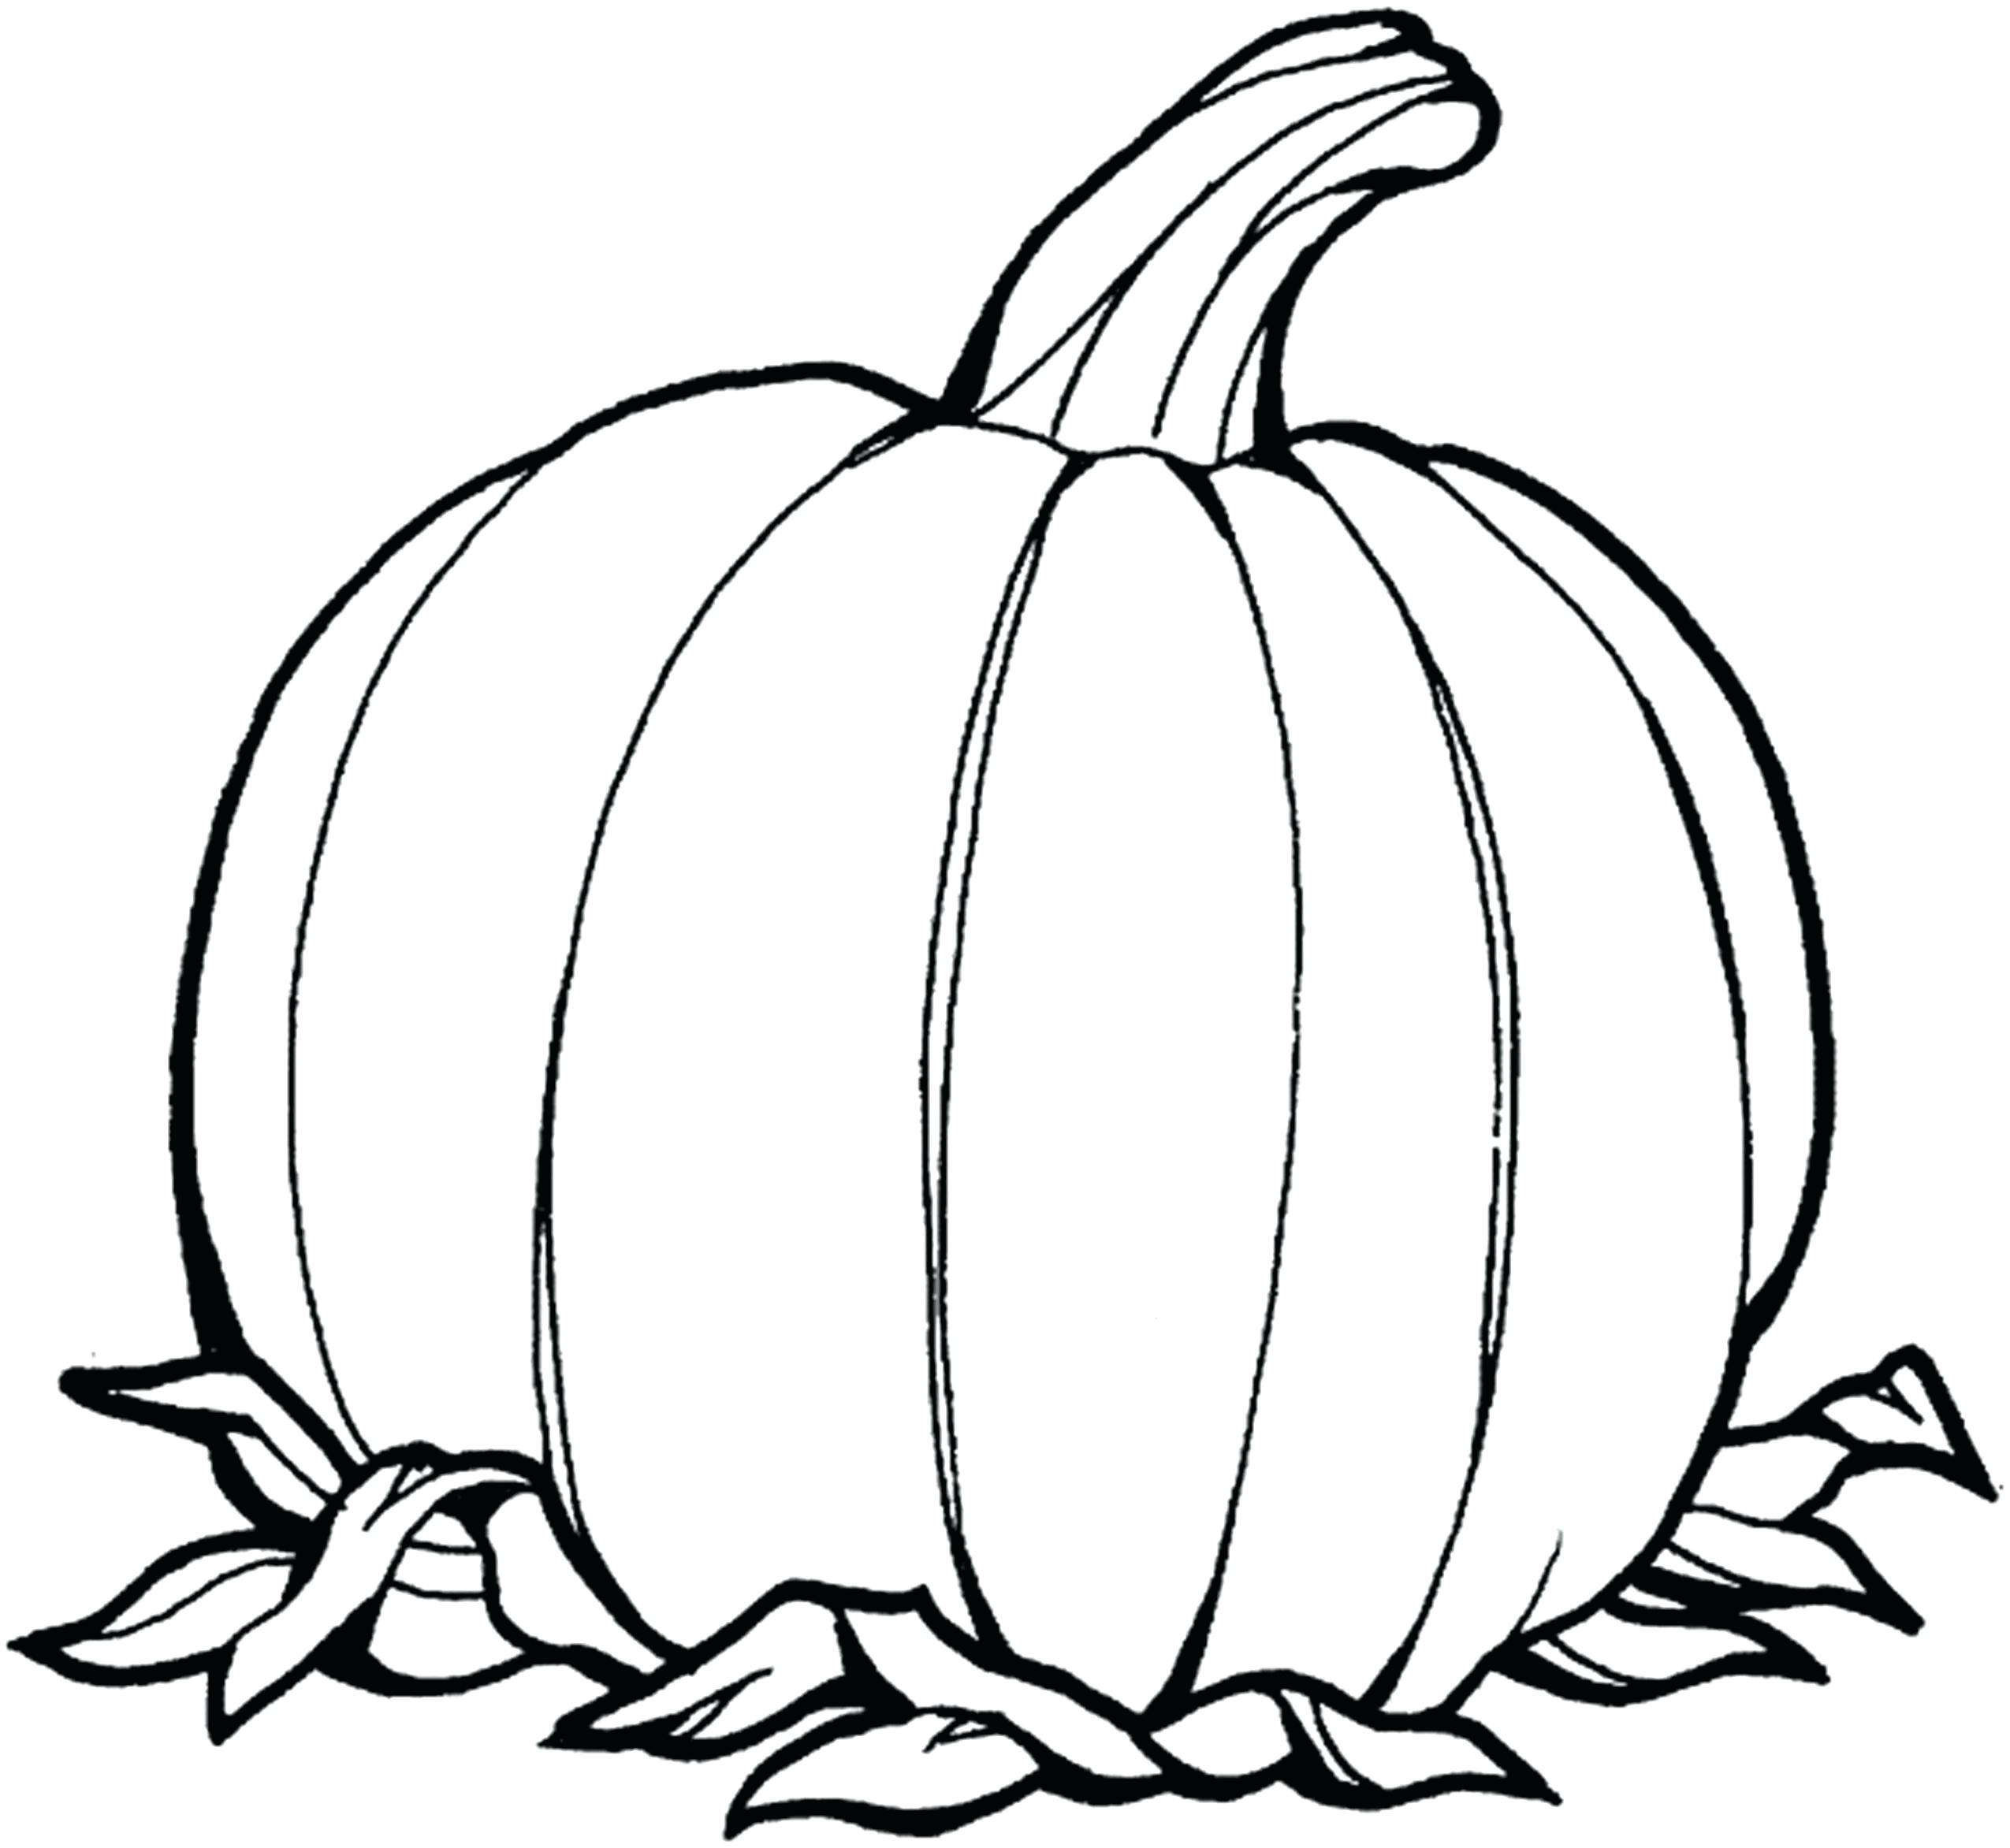 Coloring Page Of Pumpkin Coloring Pages Coloring Pages Simple Pumpkin Pageeen For Adults